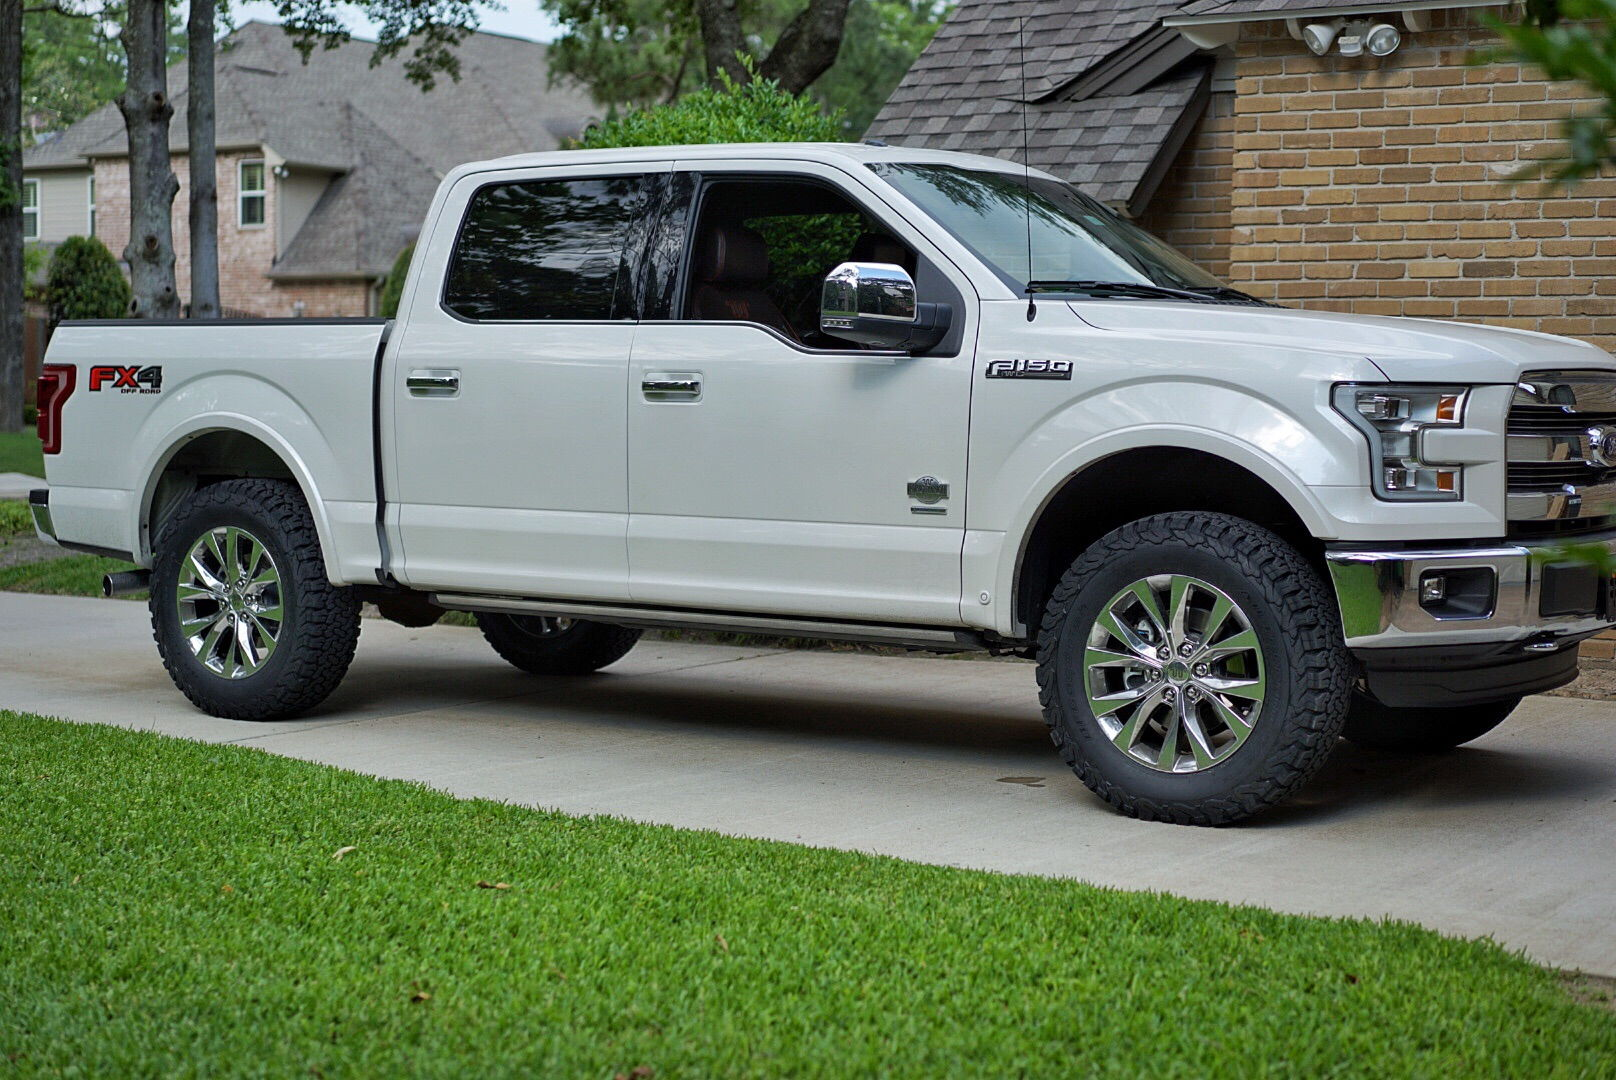 King Buick Gmc >> Pics Of 35s And Lift Kit Ford F150 Forum Community Of .html | Autos Weblog